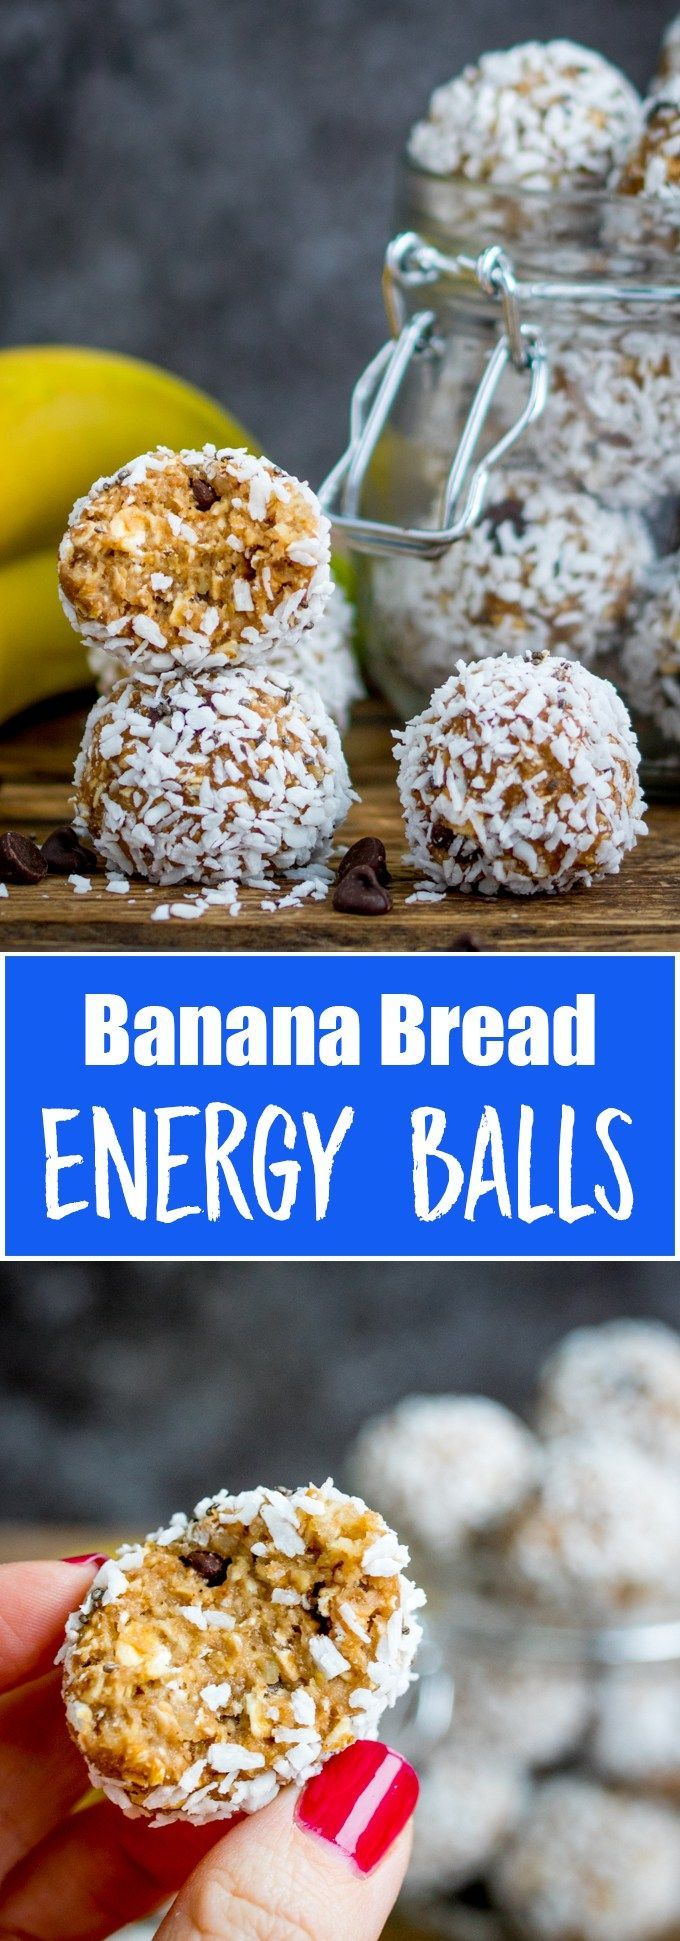 These no-bake Banana Bread Energy Balls are packed with delicious goodies. Perfect for breakfast on the run! Gluten free too! #energyballs #energybites #bananabread #glutenfreesnack